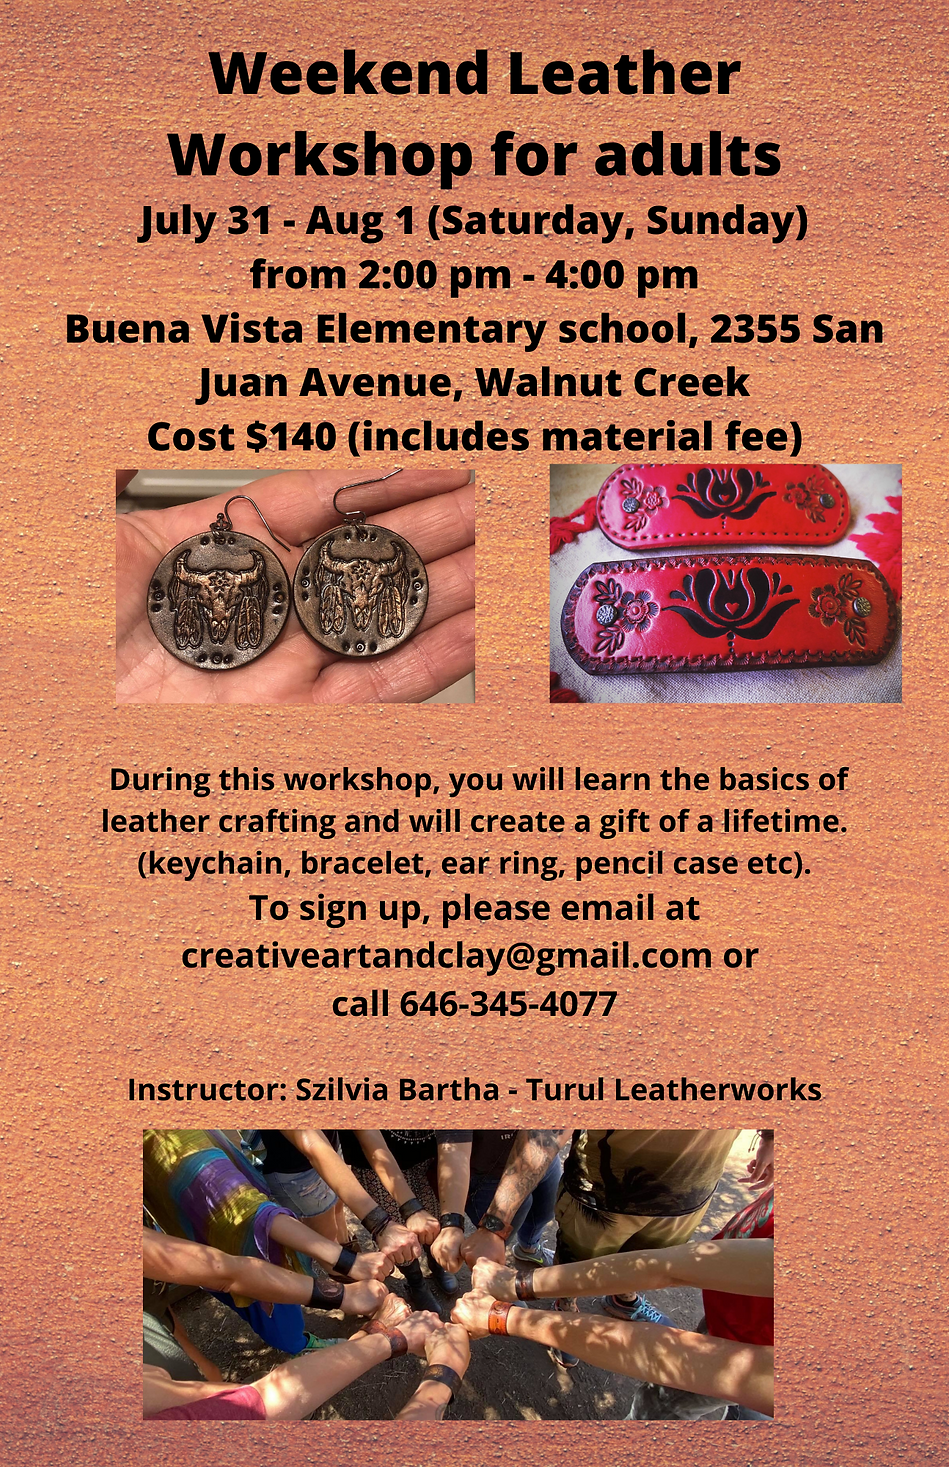 Weekend Leather Workshop for adults2.png